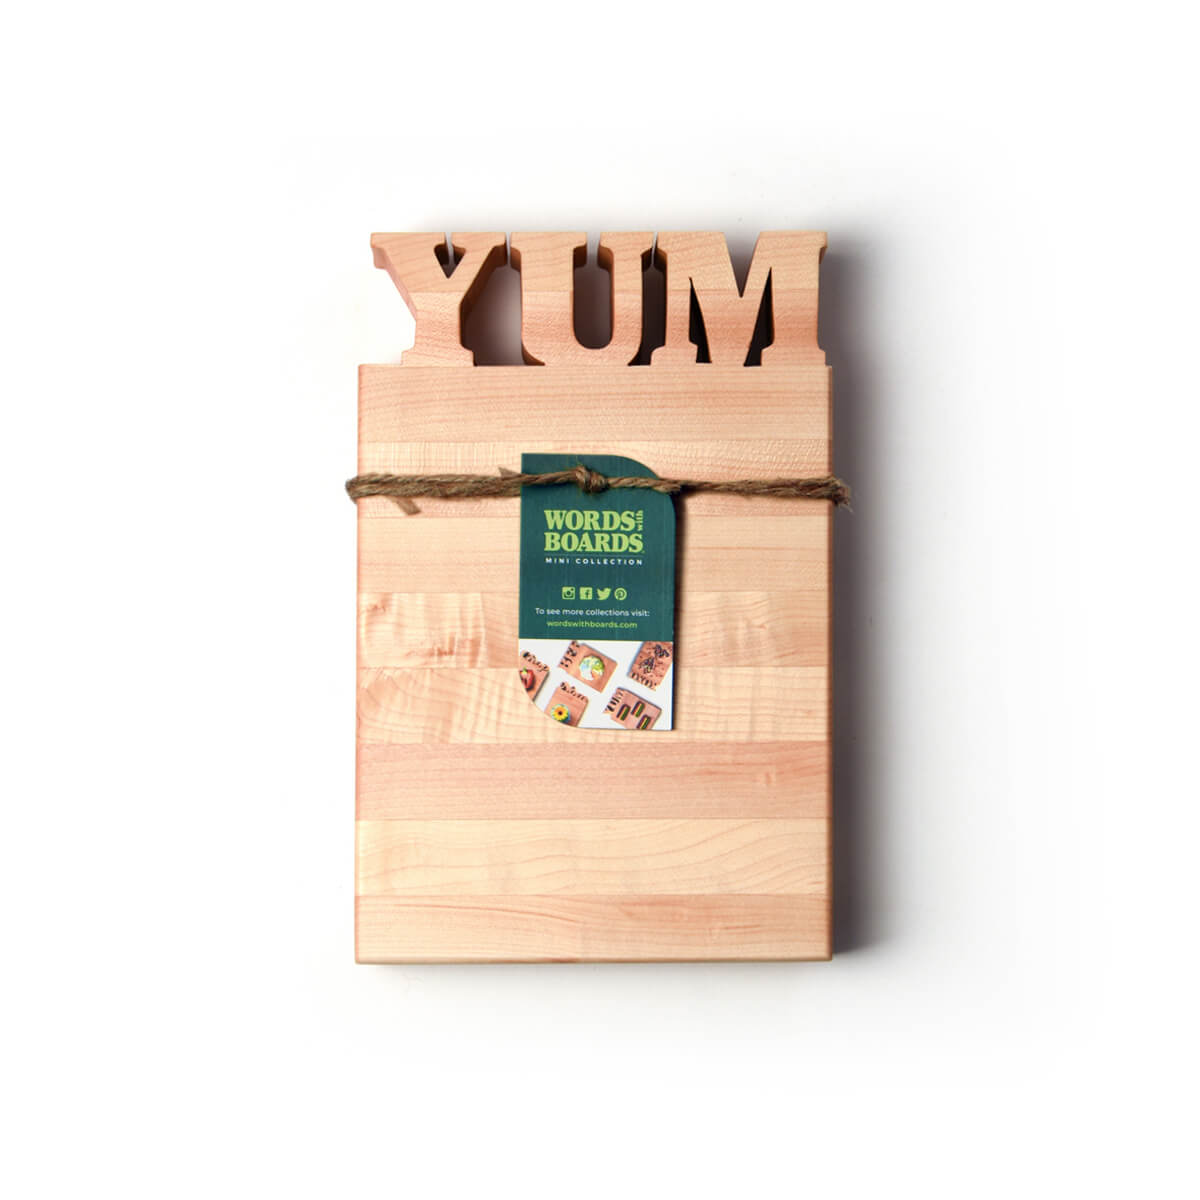 cute cutting board sayings- this one has YUM cut out of wood-bottle opener option